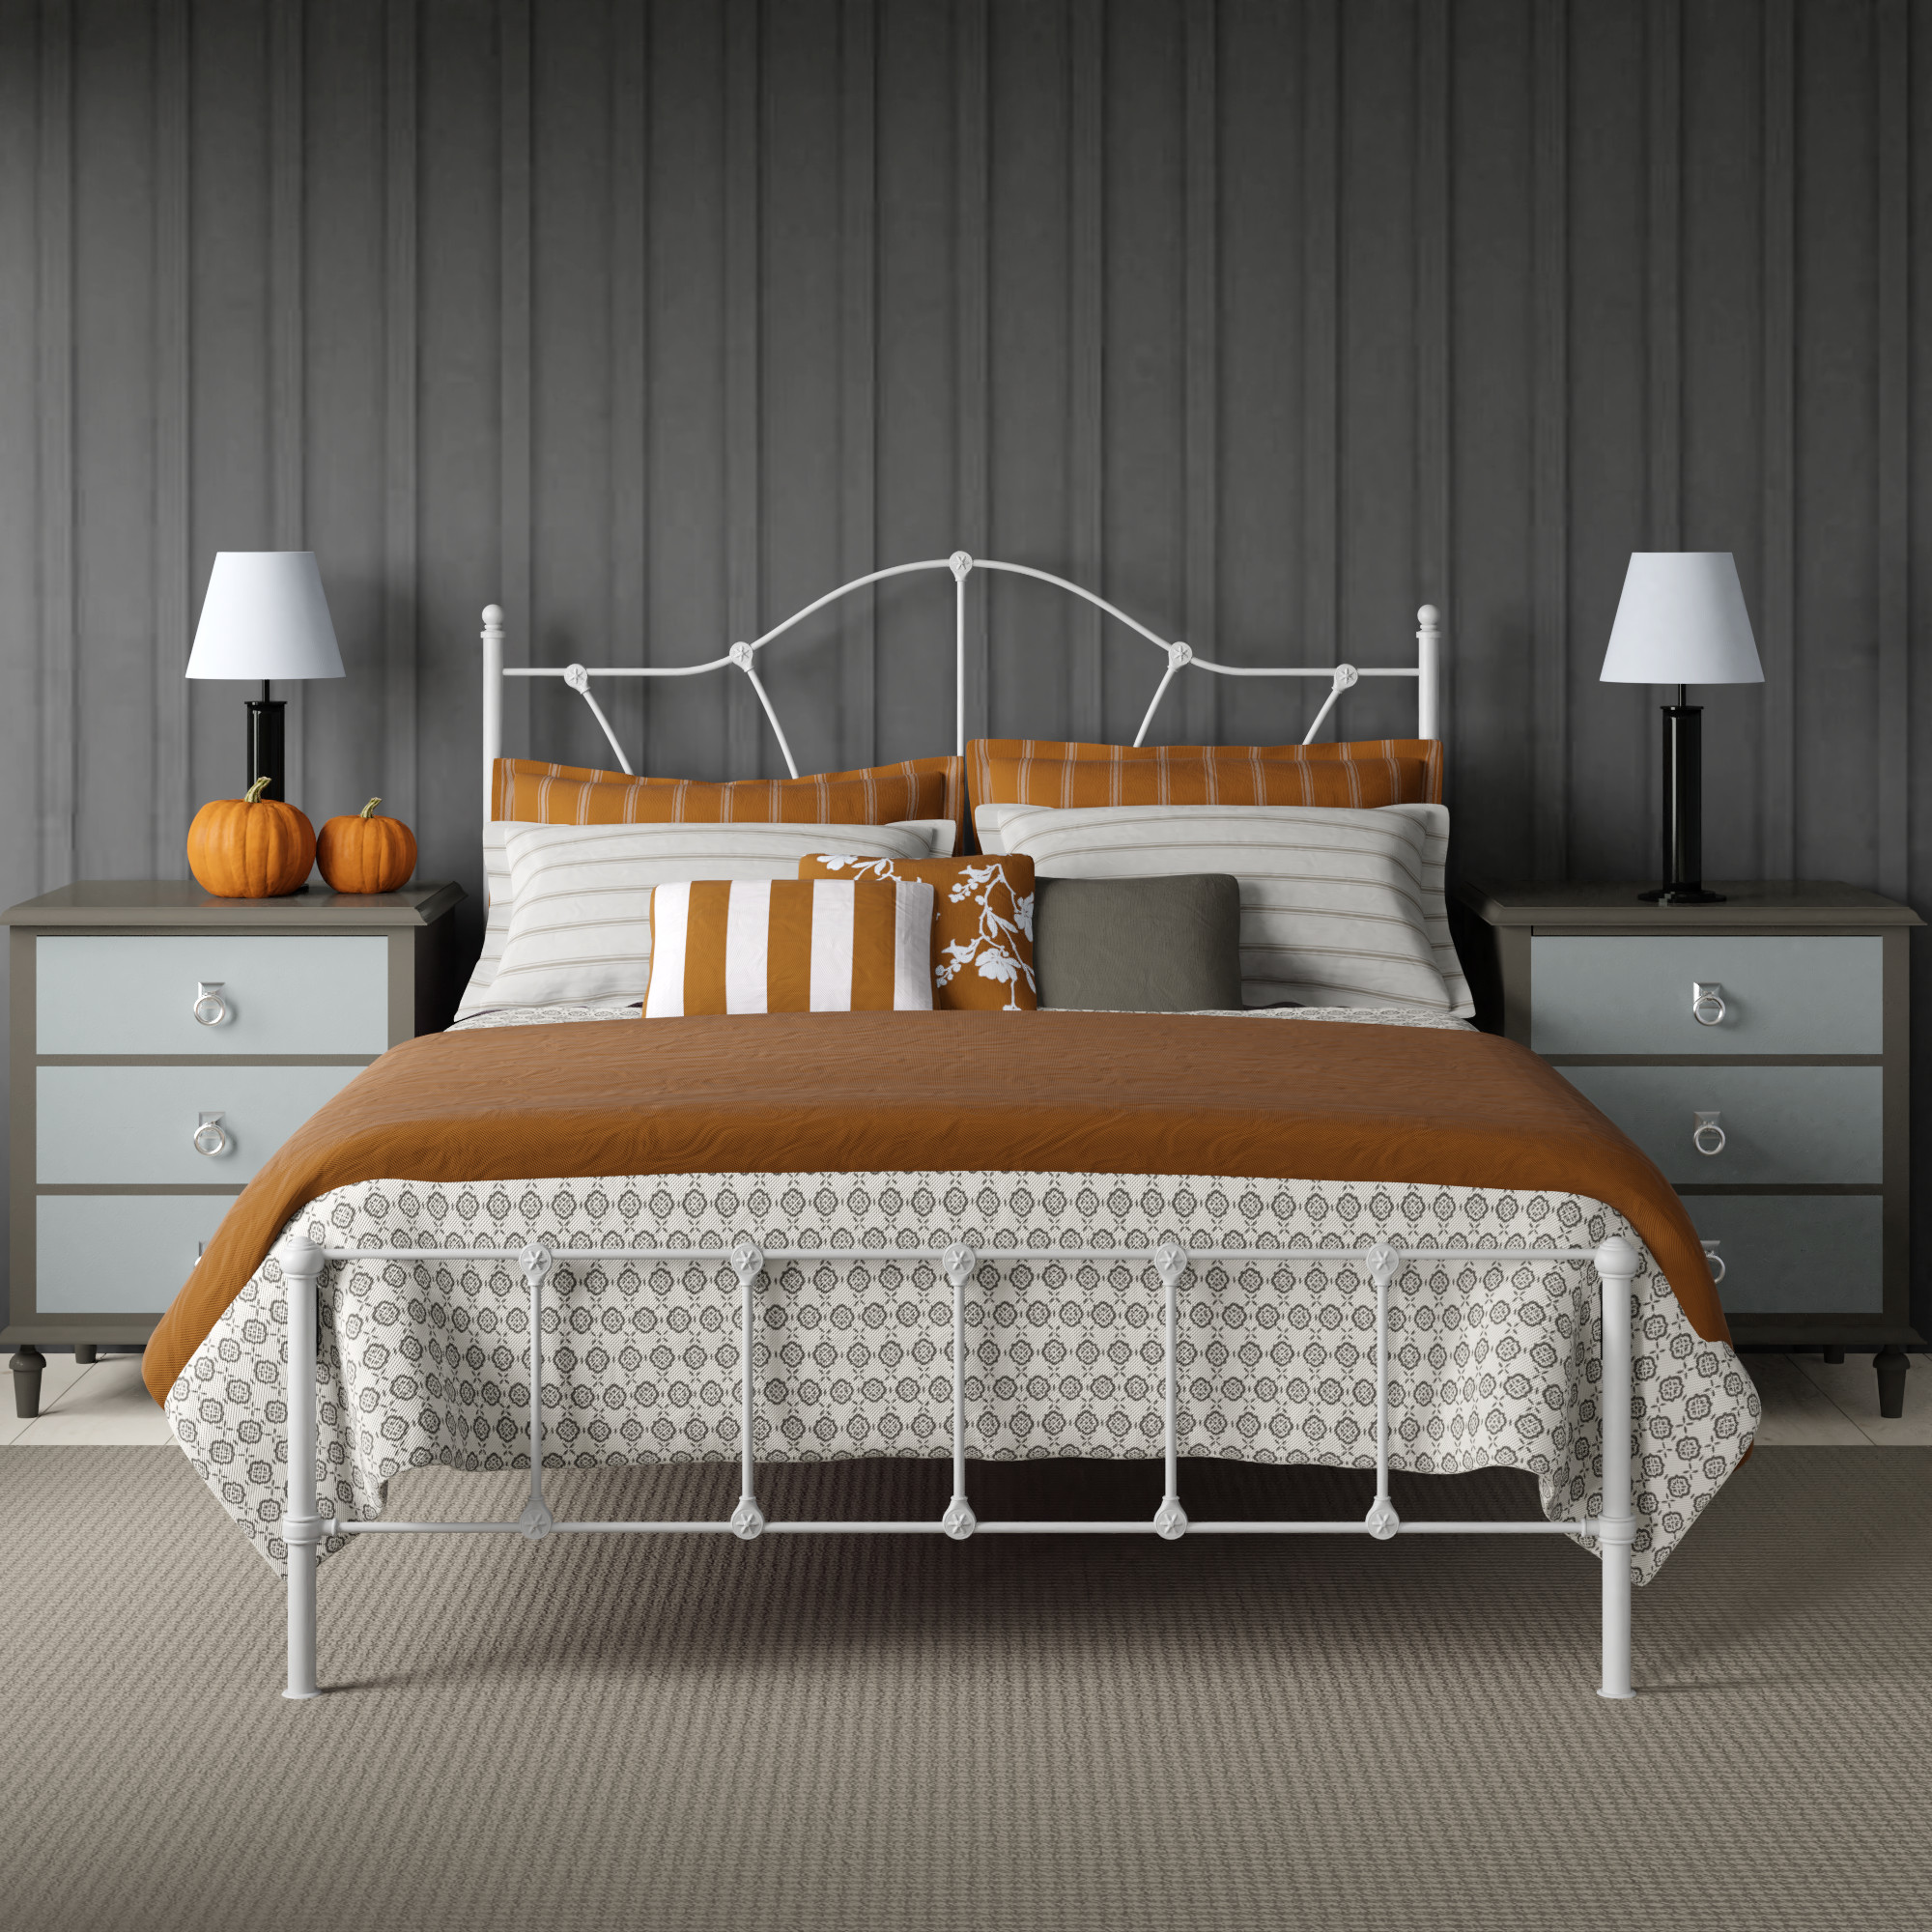 Beds with low footends by The Original Bed Co